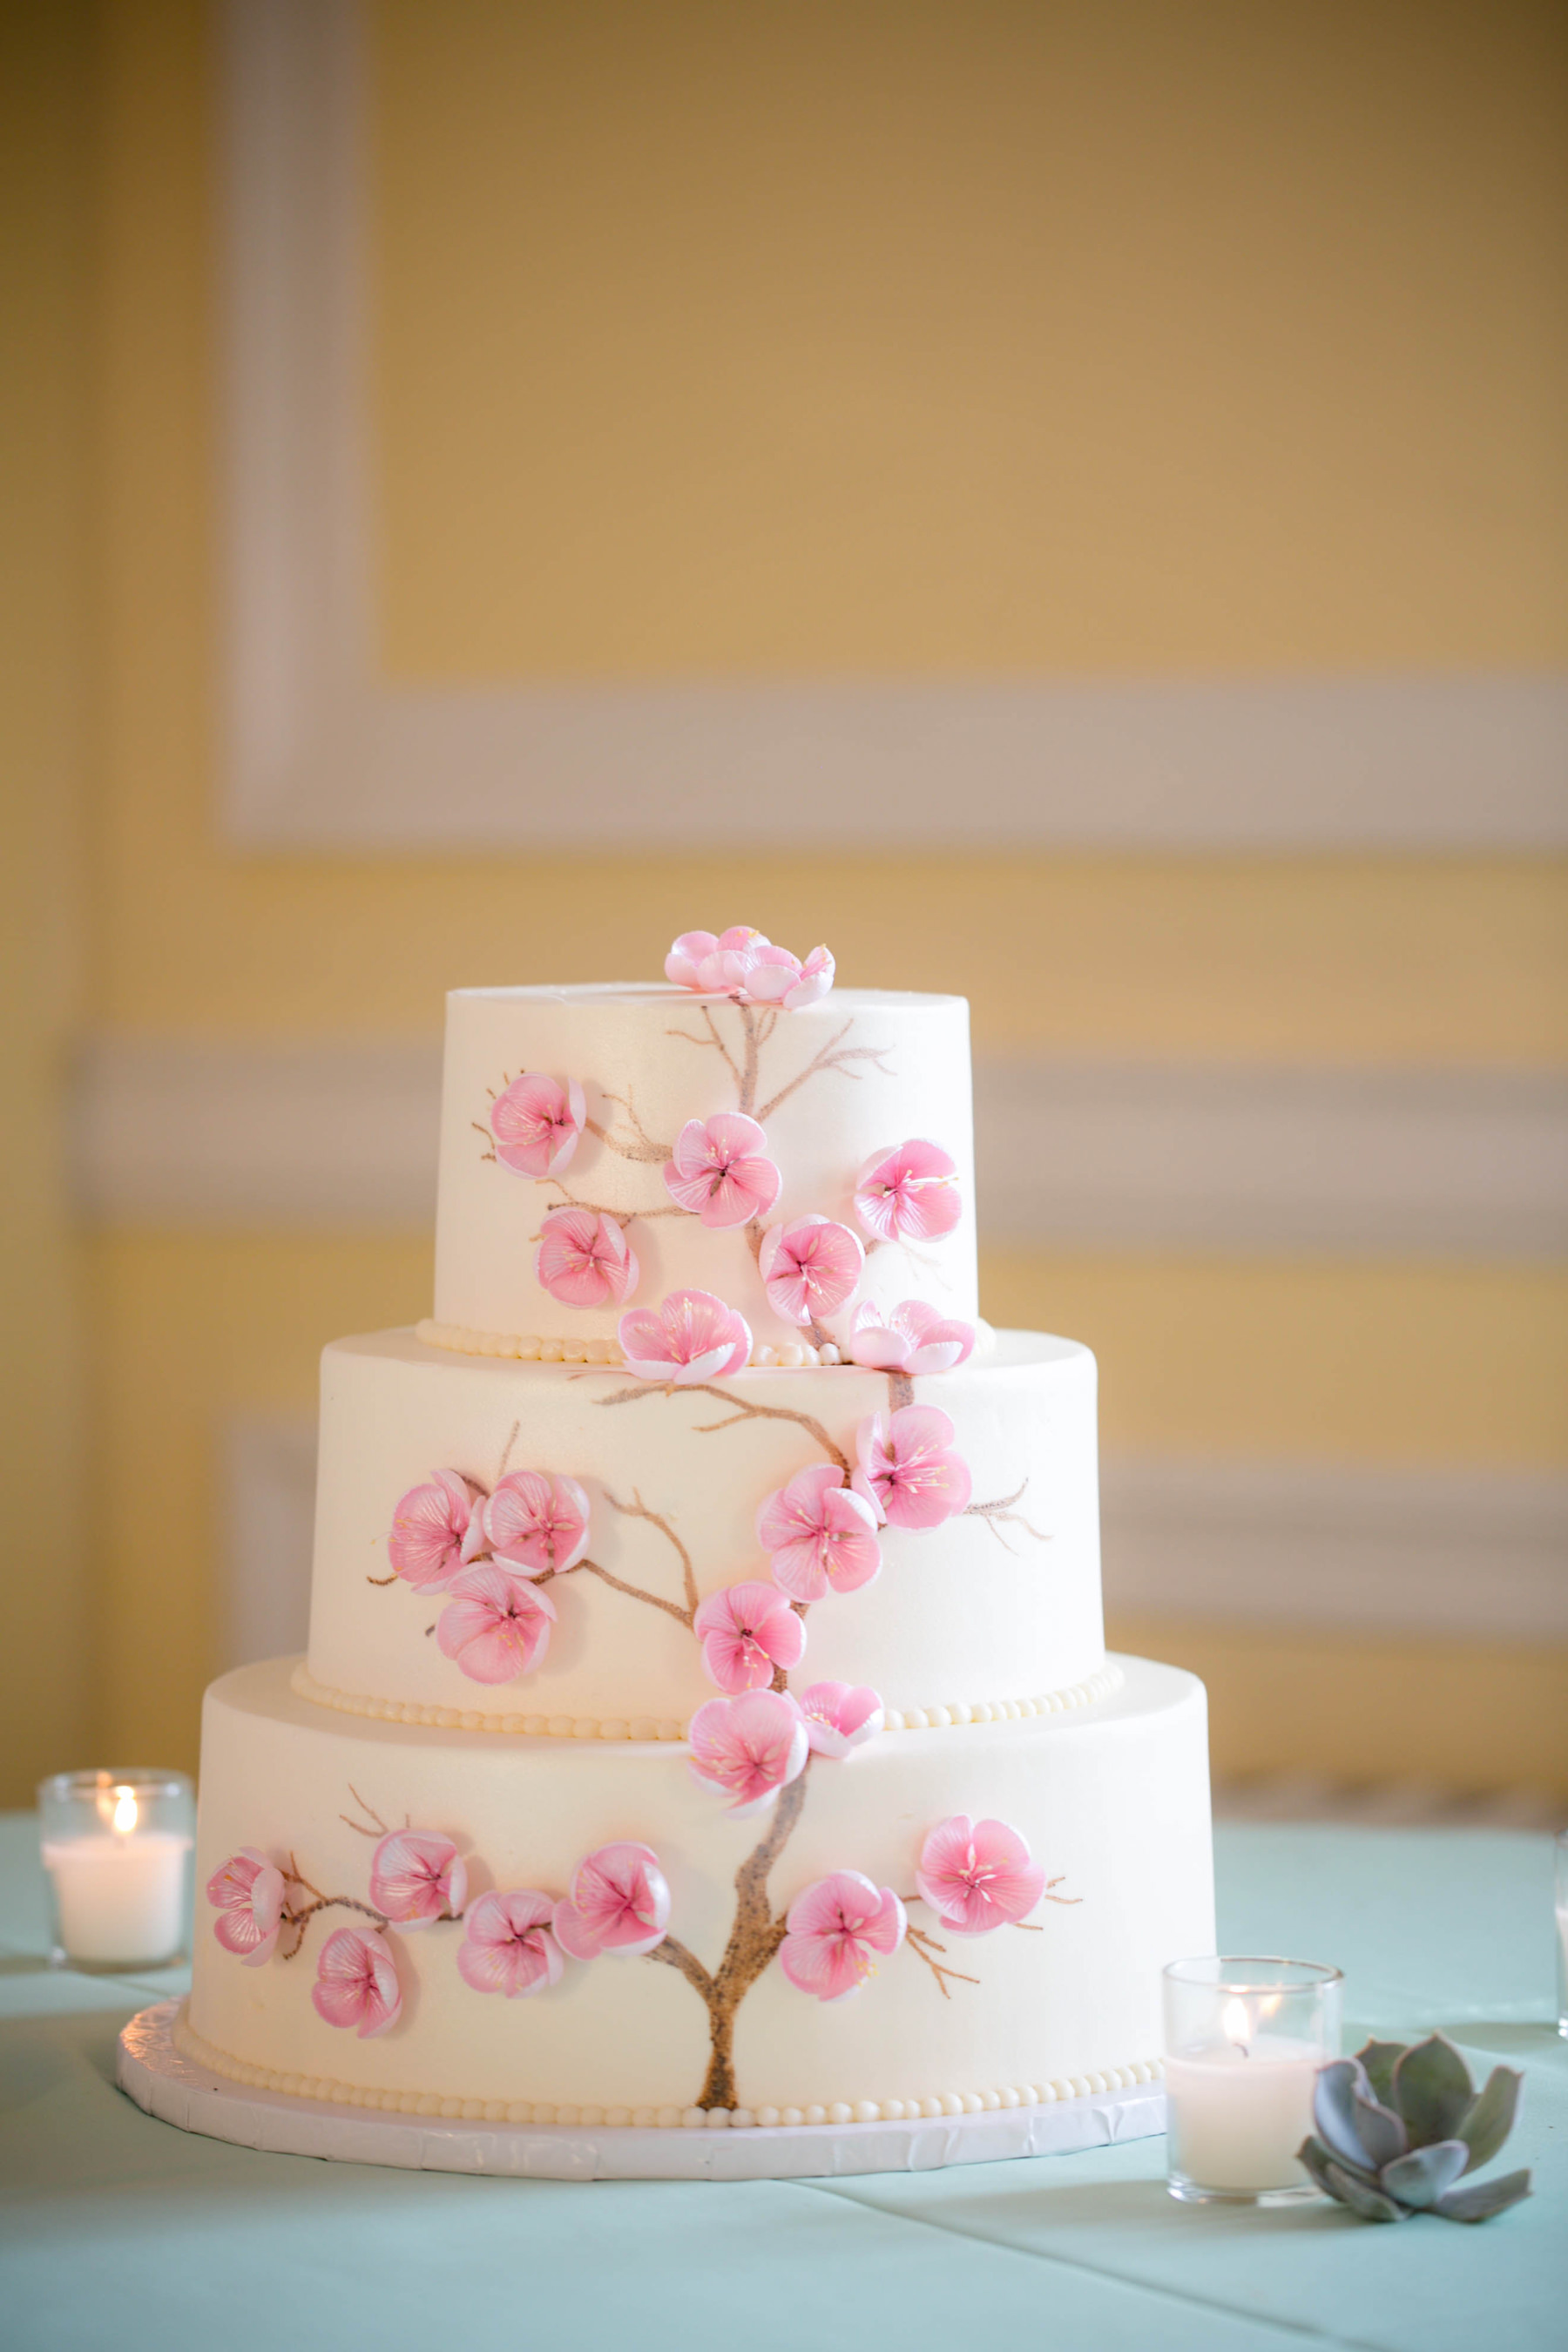 Custom Cherry Blossoms Wedding Cake for D.C. weddings